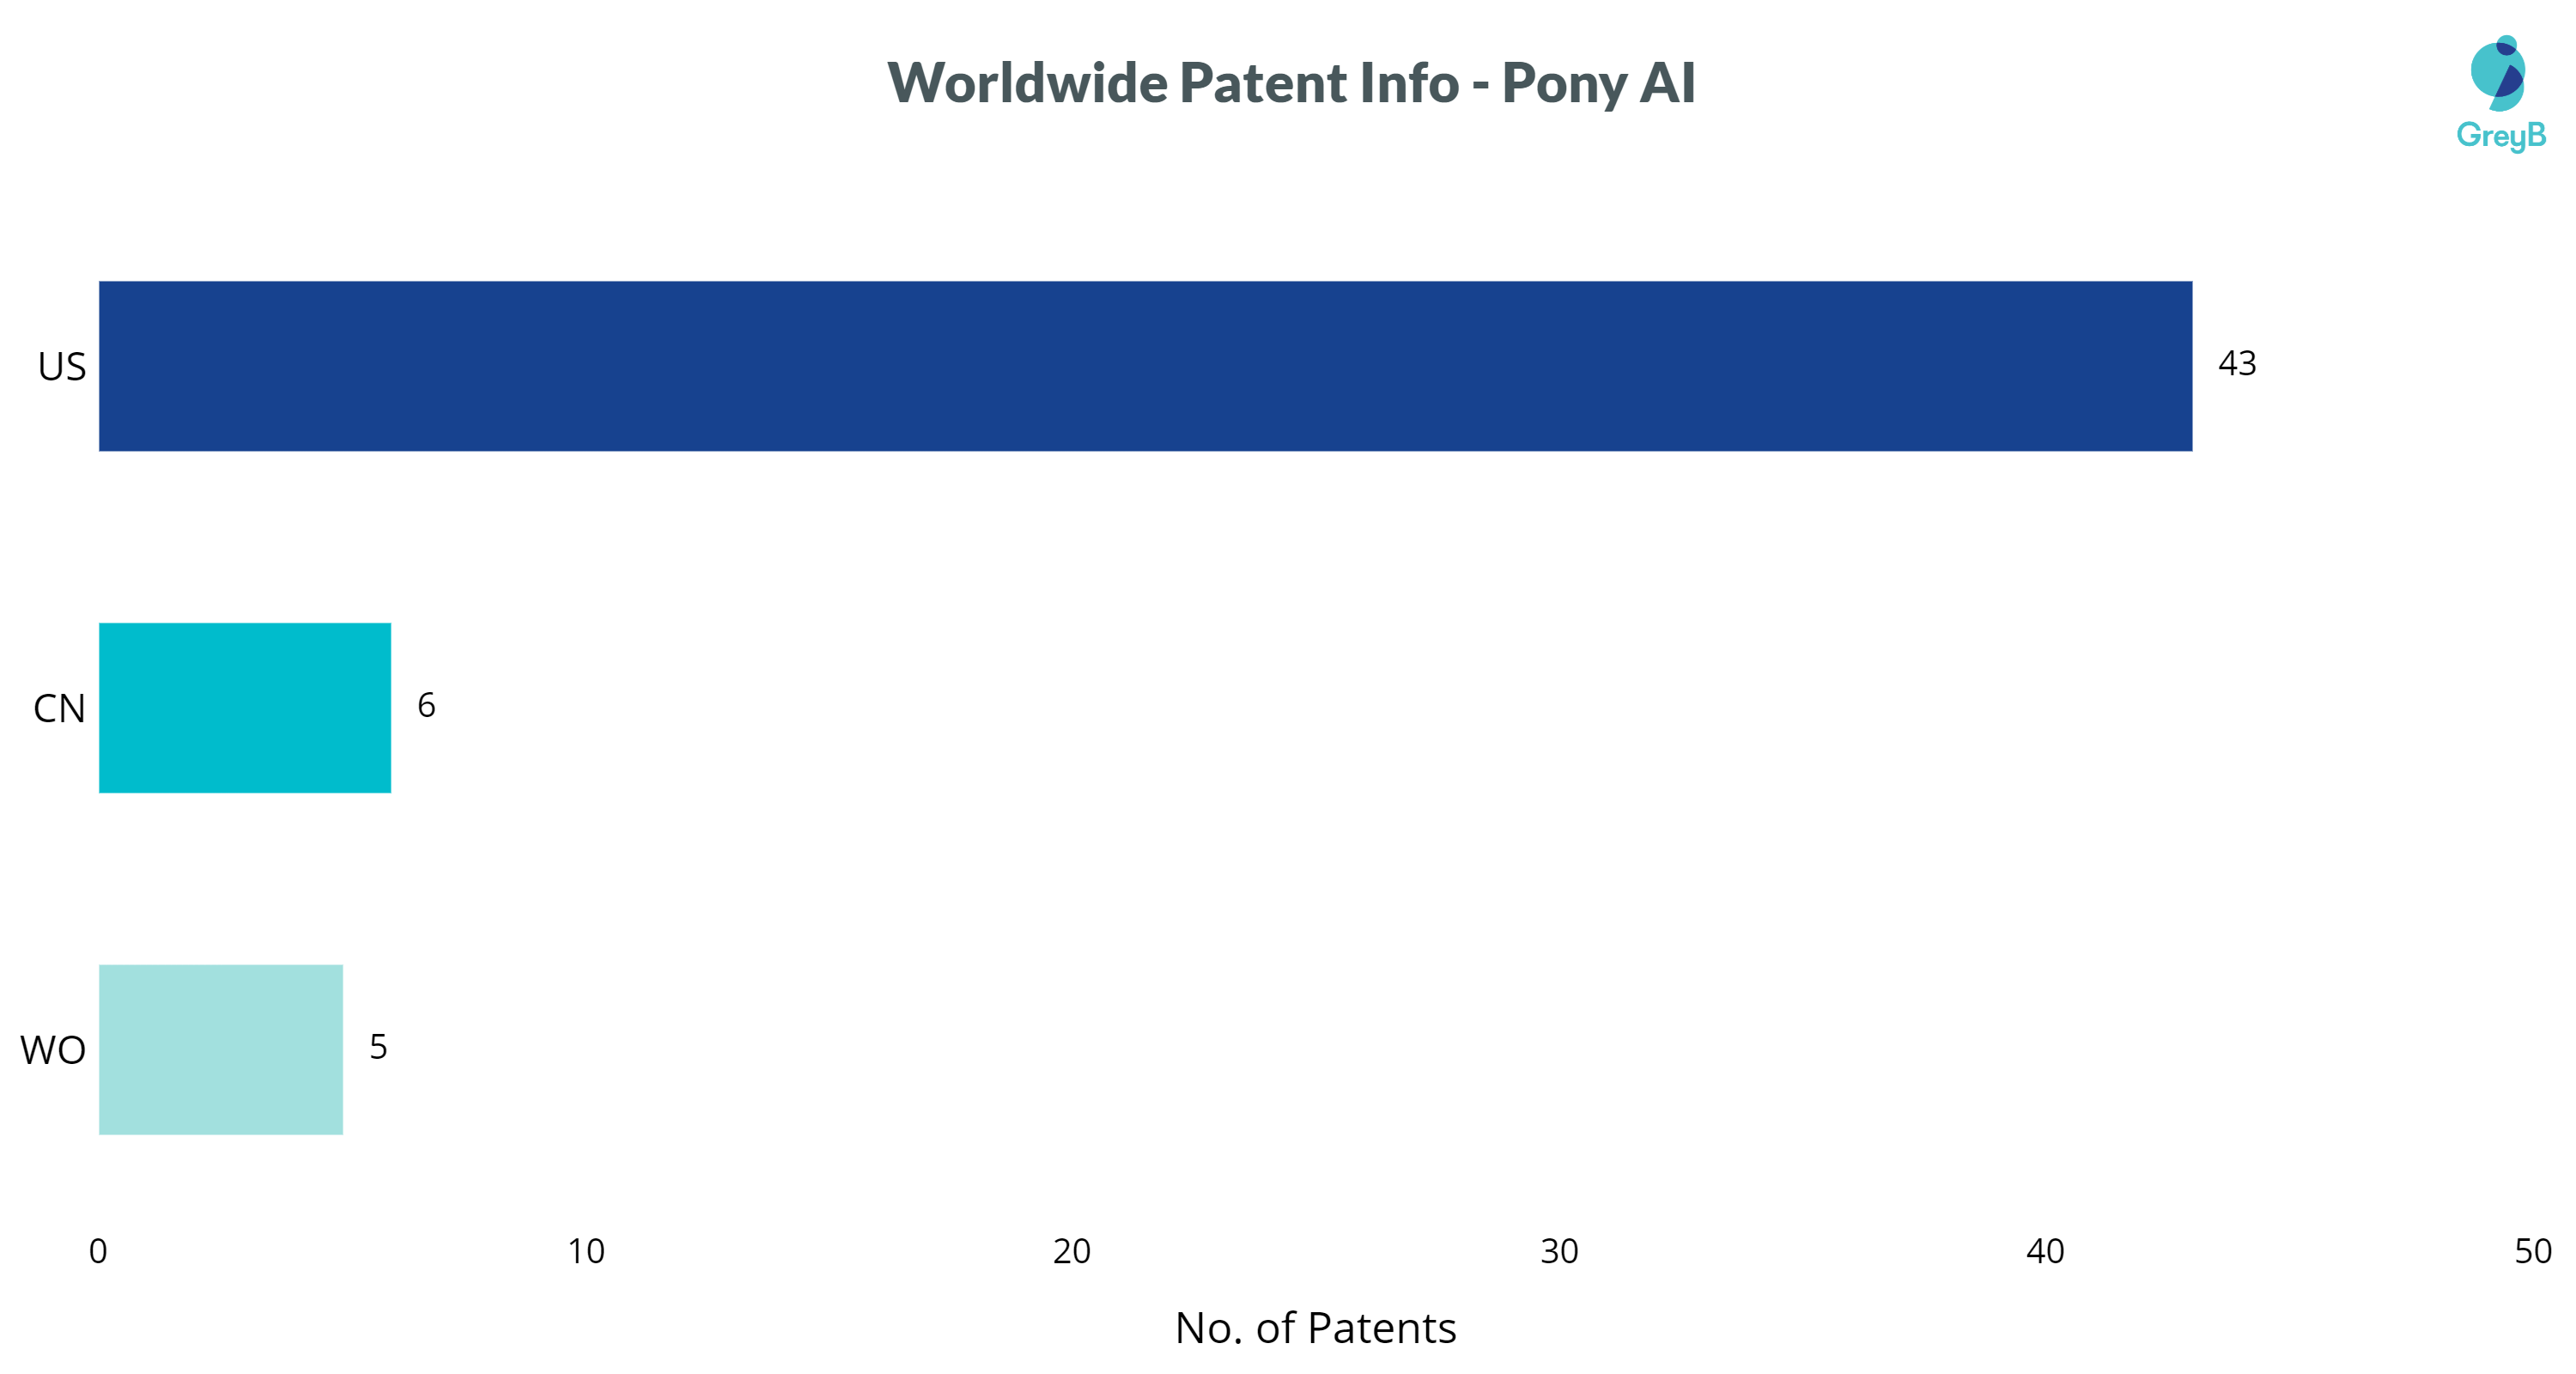 Pony AI patents